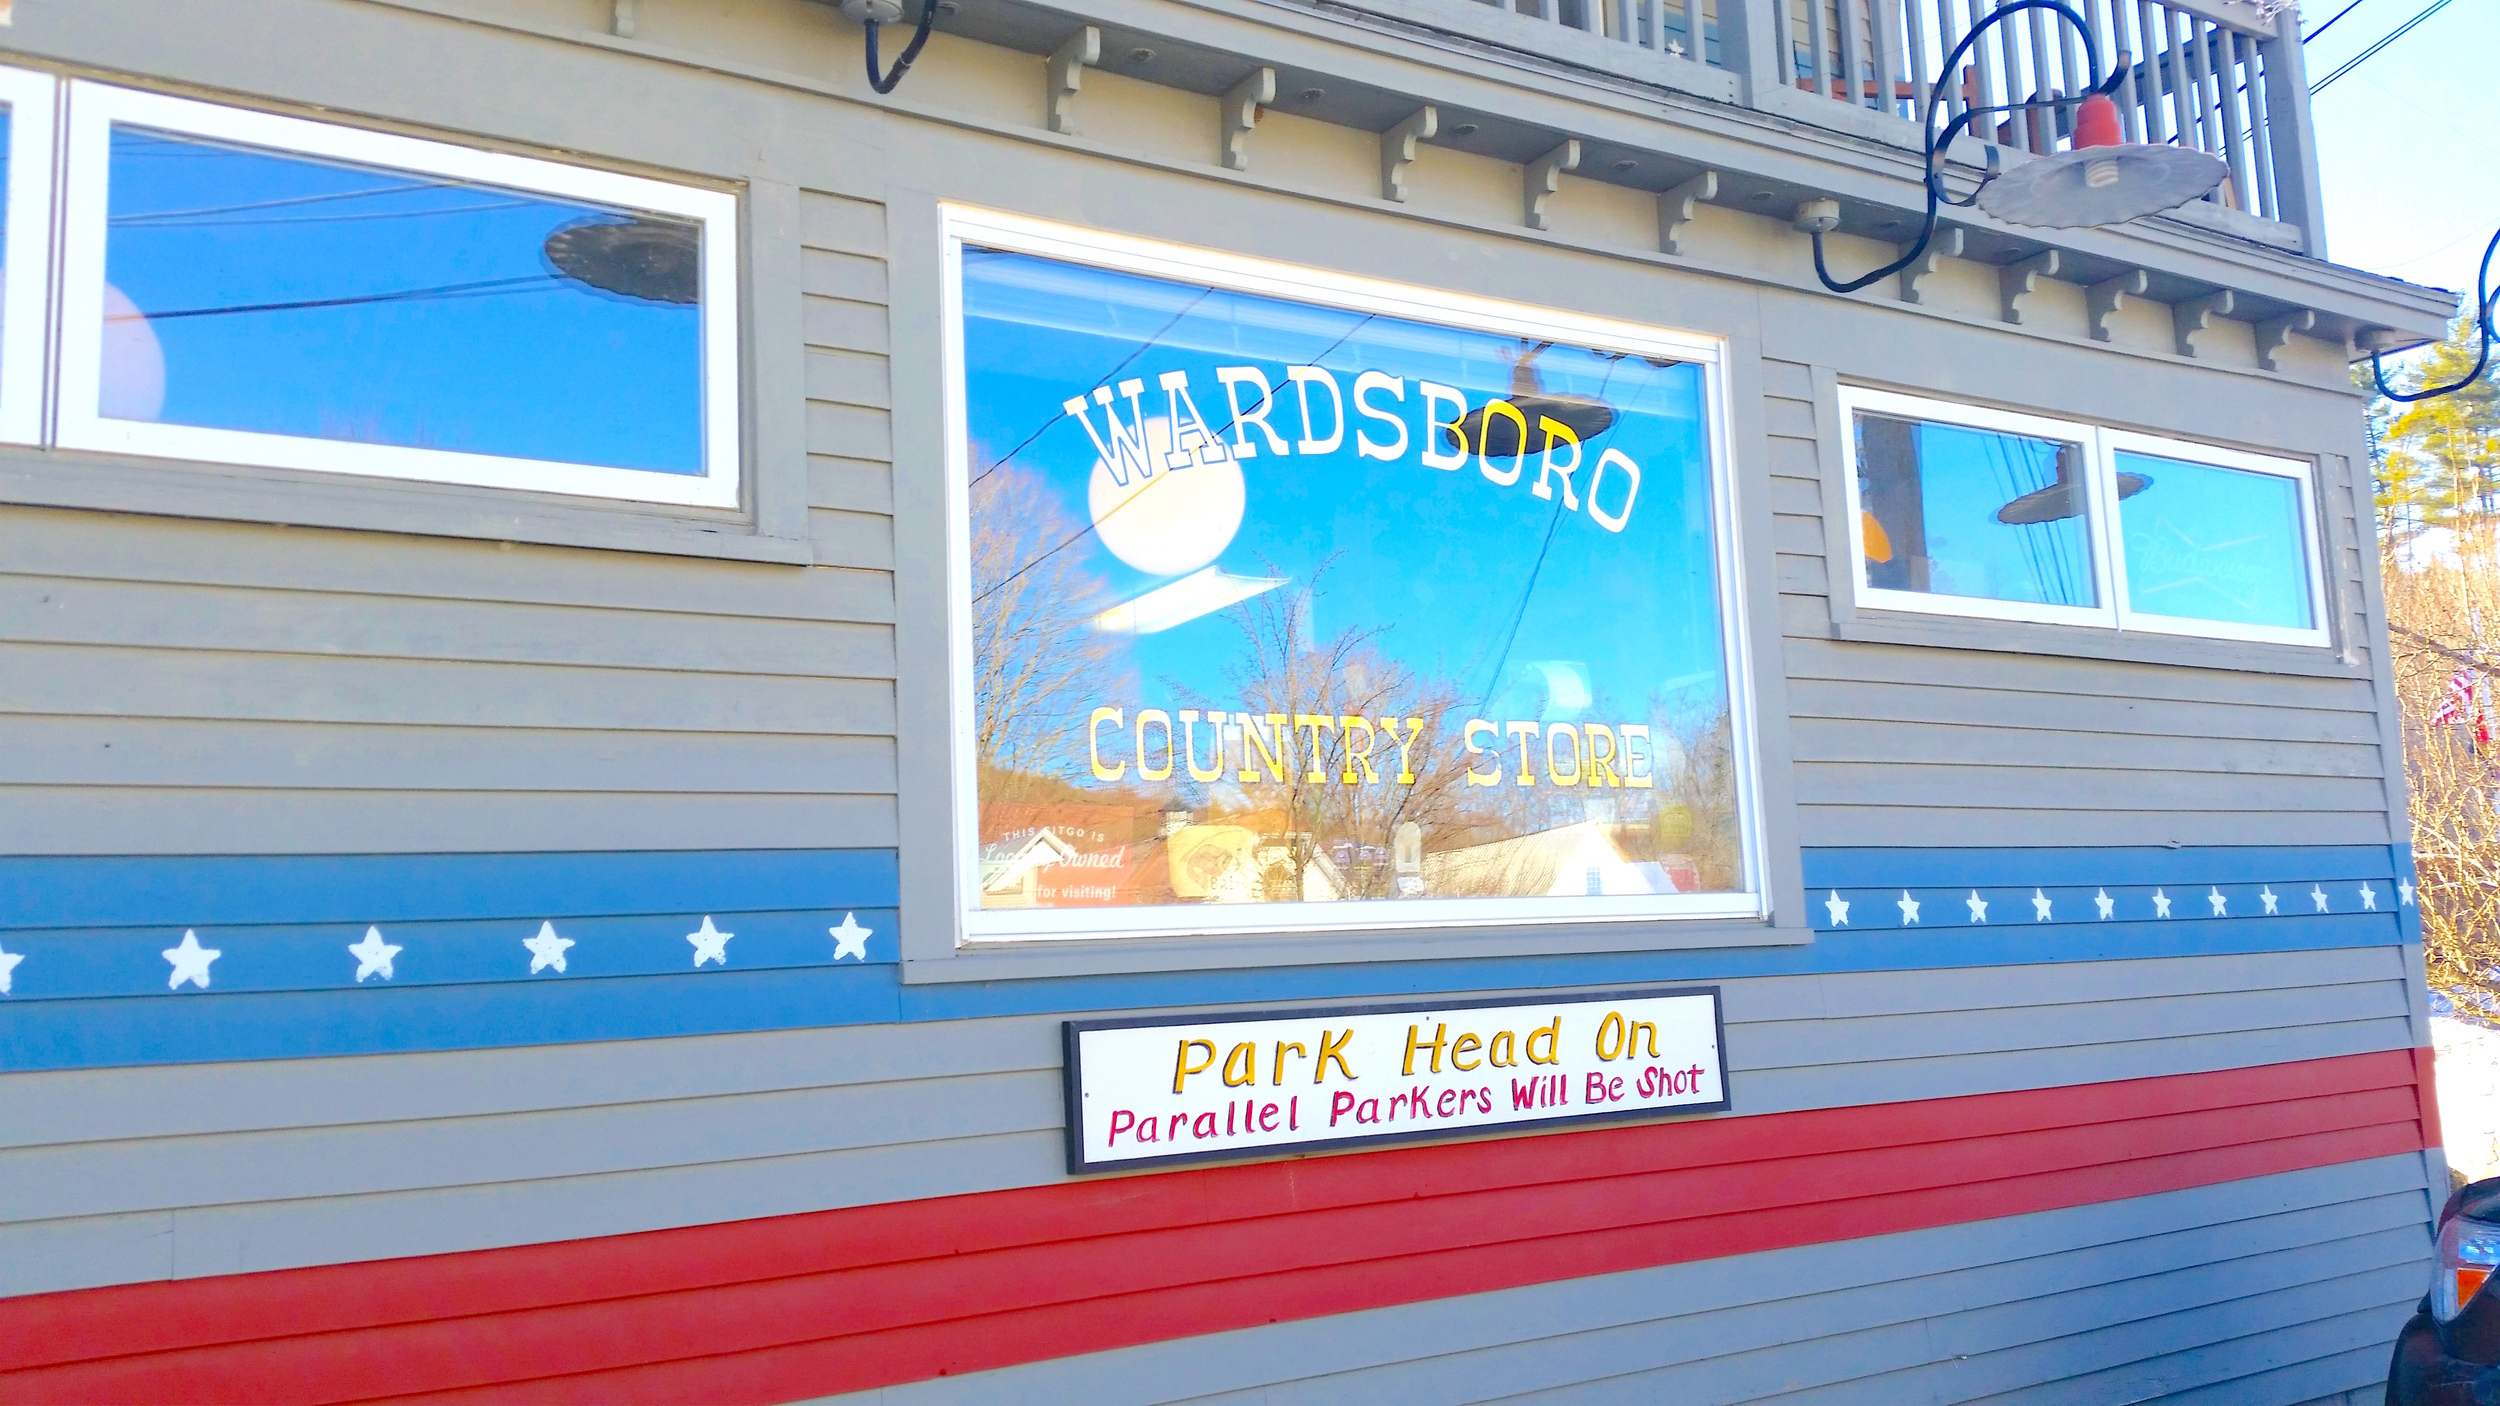 Front of the Wardsboro Country Store